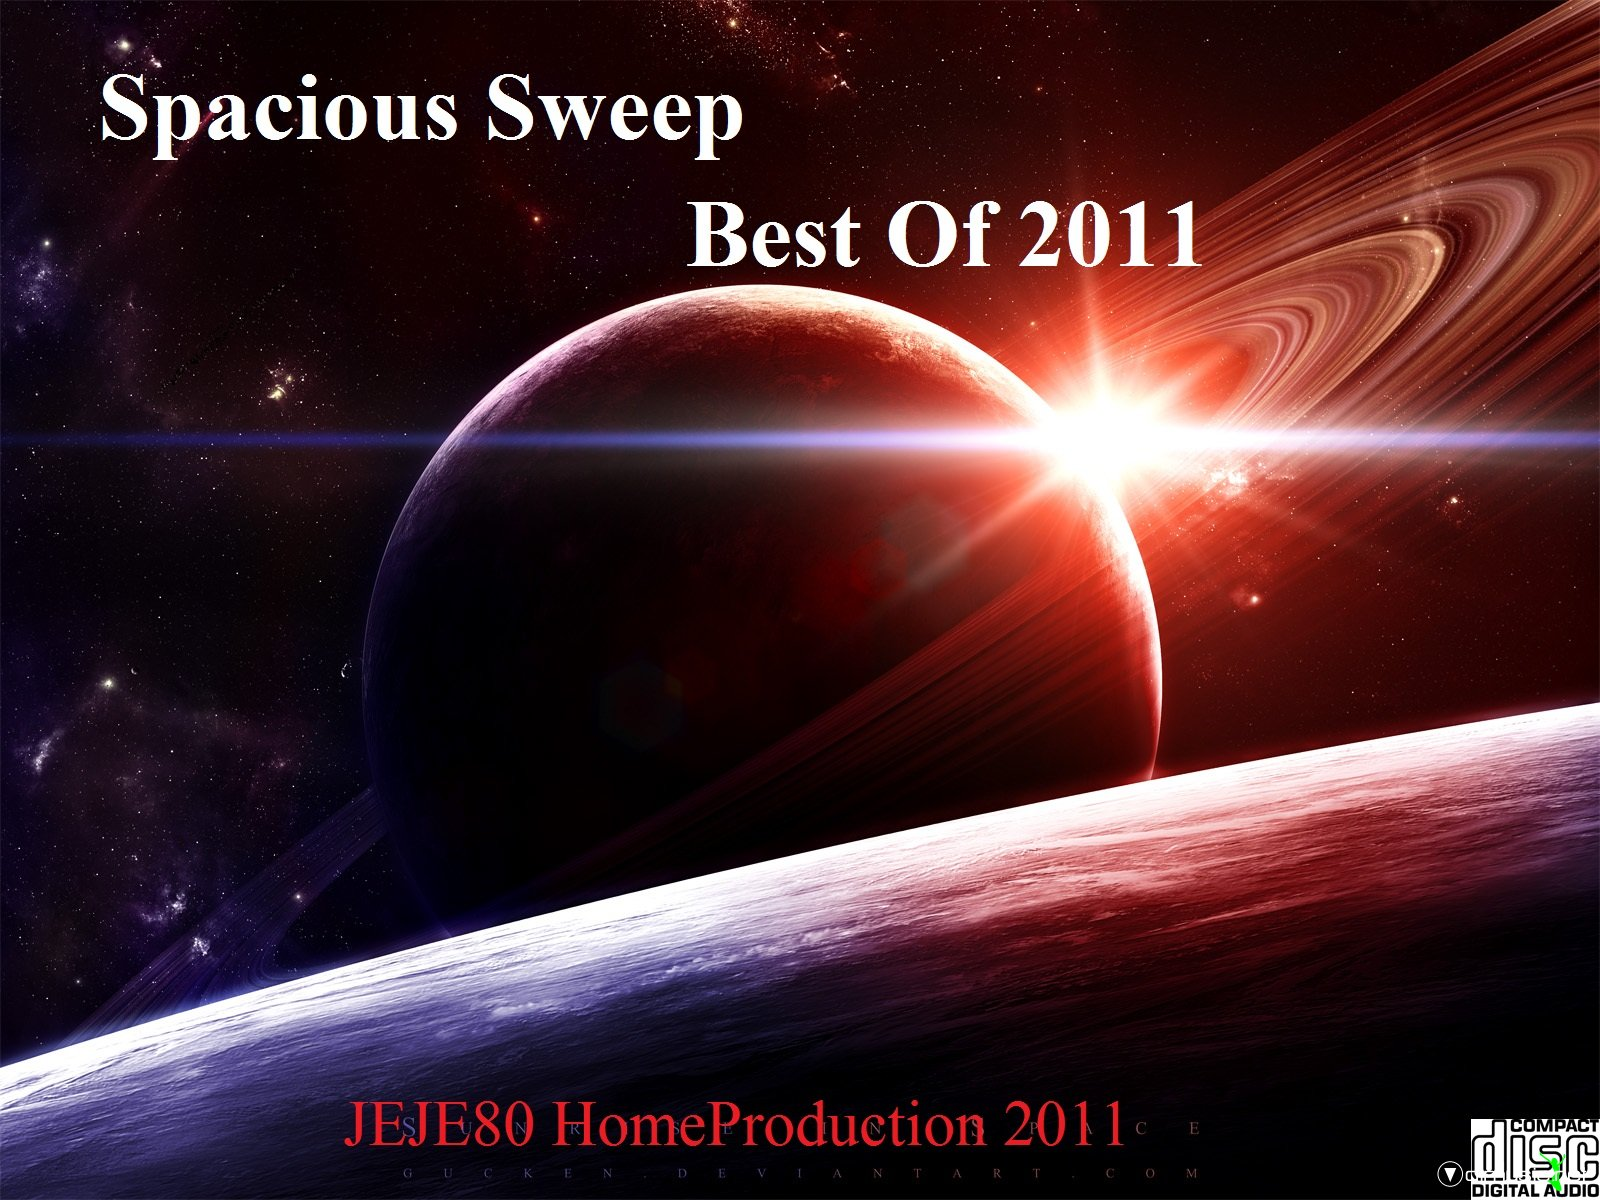 Spacious Sweep - Best Of 2011